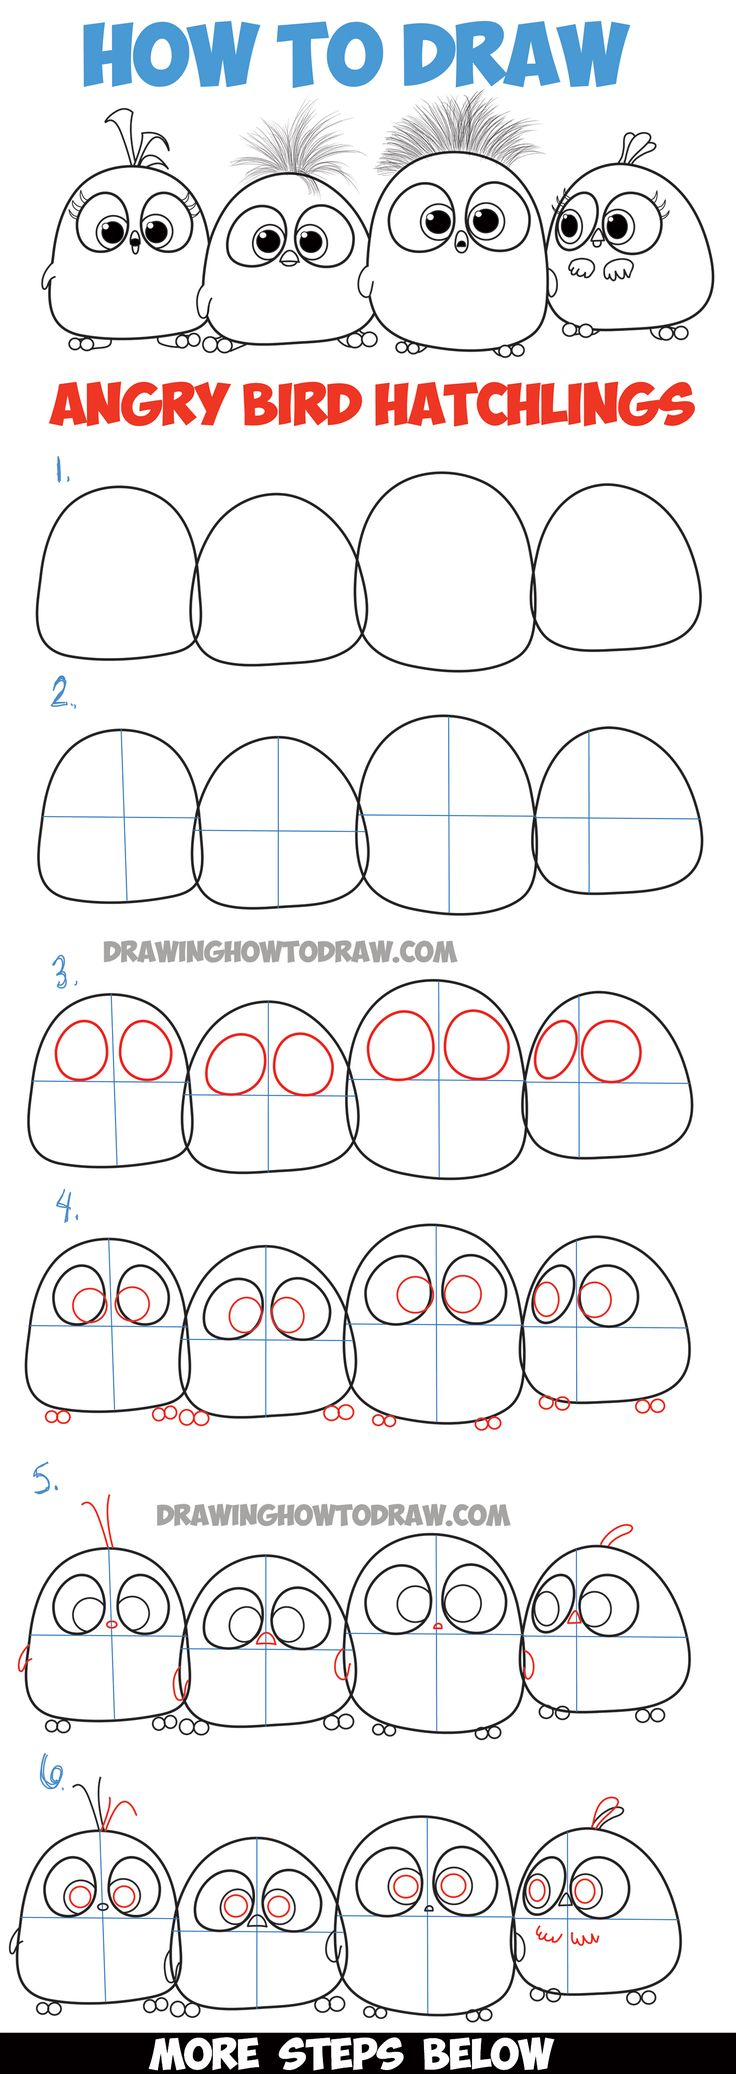 Learn How To Draw Angry Bird Hatchlings Baby Birds  Step By Step Drawing…